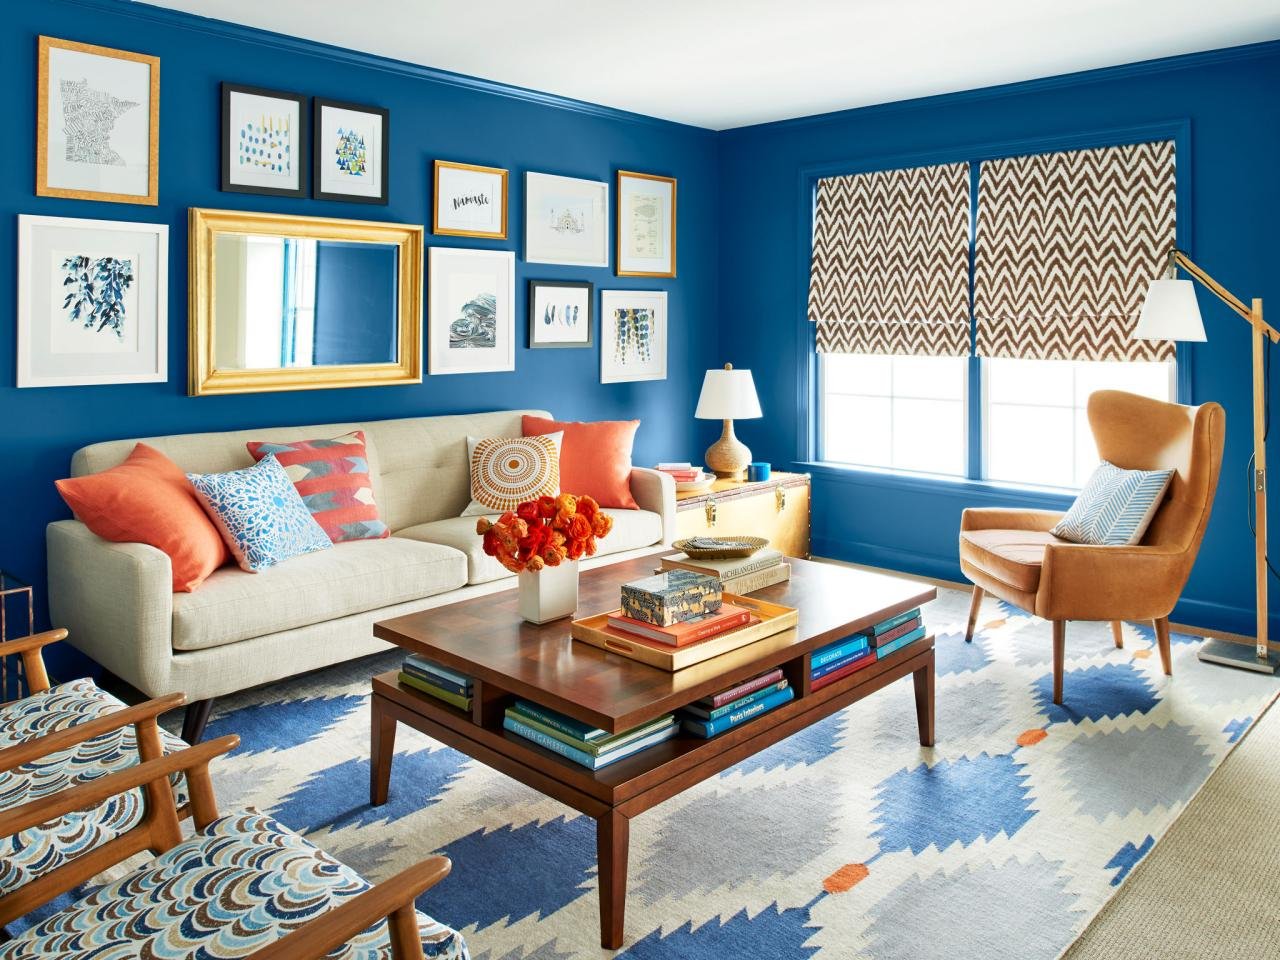 Hgtv Magazine Features Stenciled Accent Pillows To Using Cutting Edge Stencils Spruce Up A Living